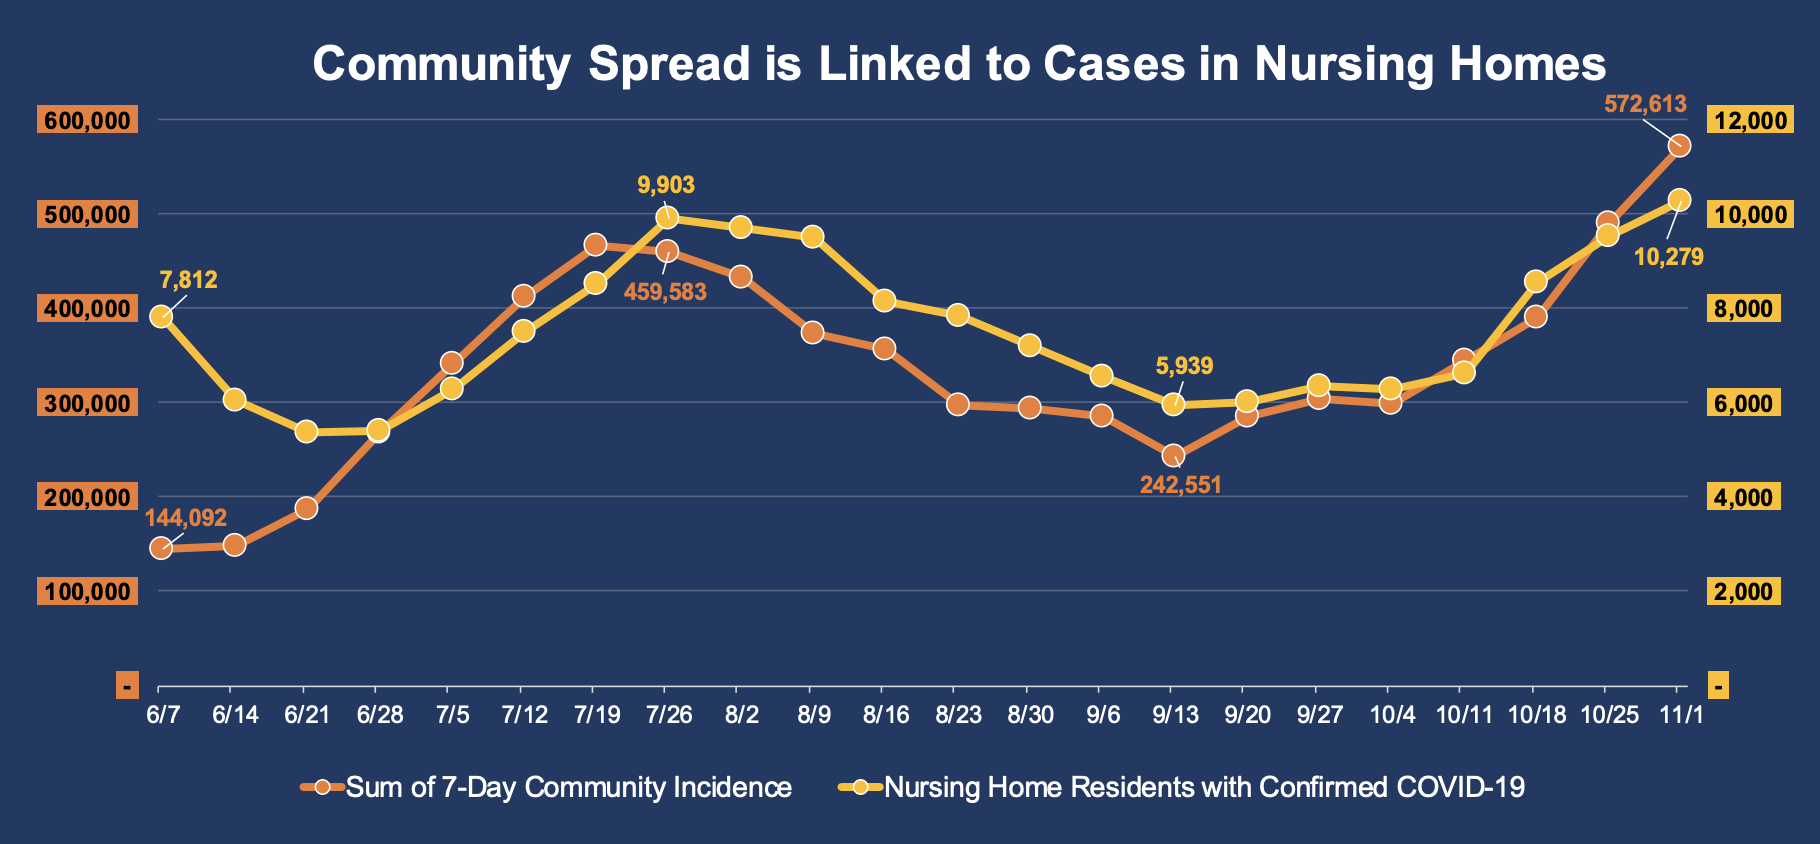 Community Spread Is Linked To Cases in Nursing Homes